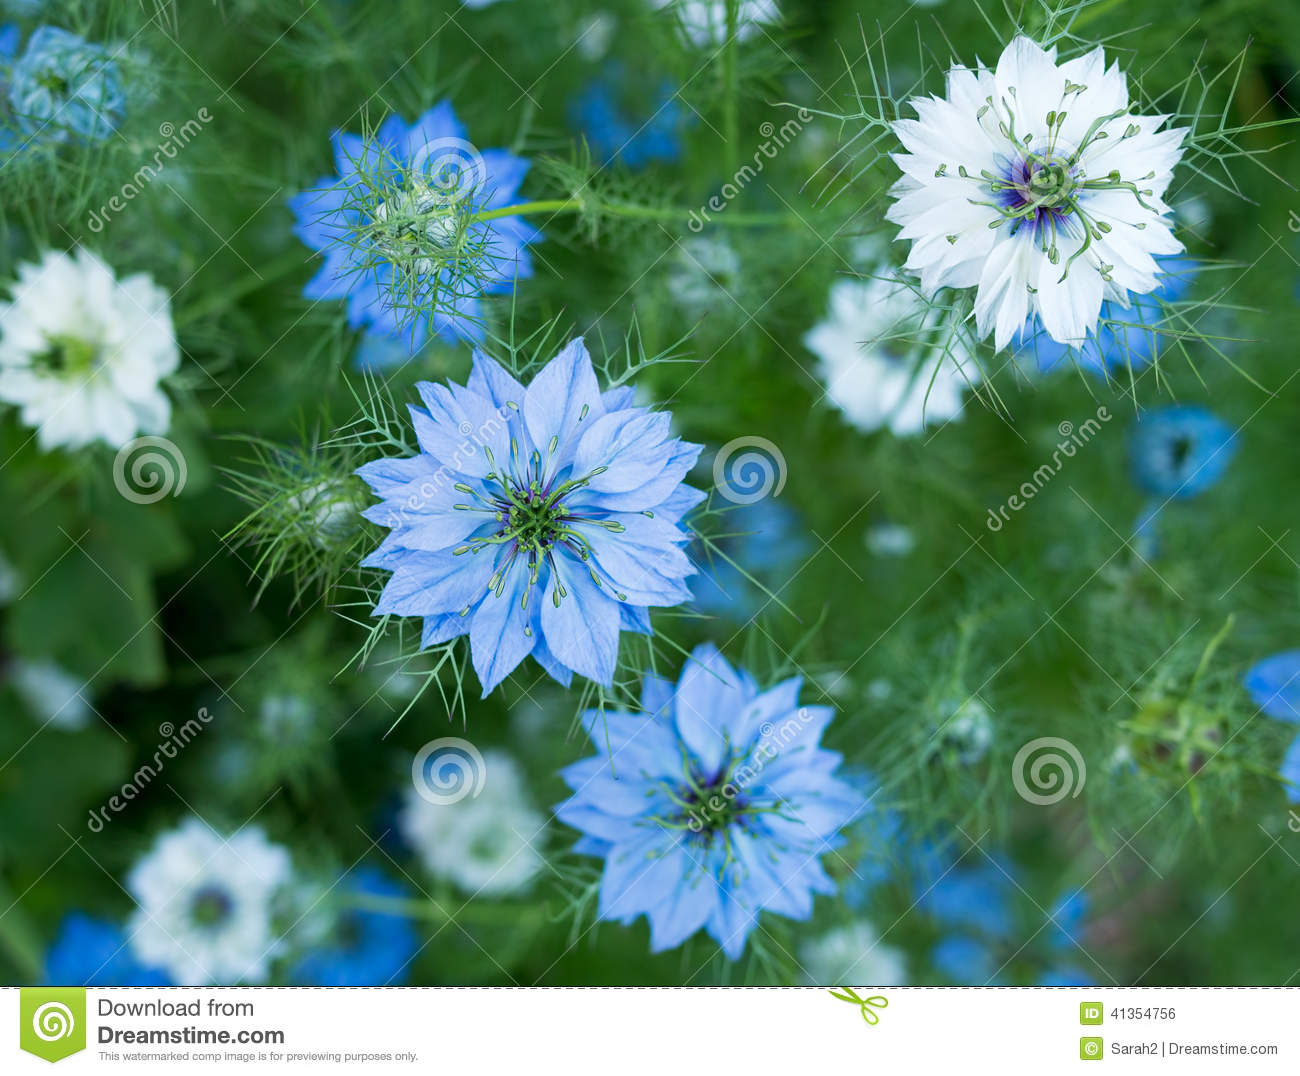 Nigella Plant Info: Learn About The Care Of Love In A Mist ...